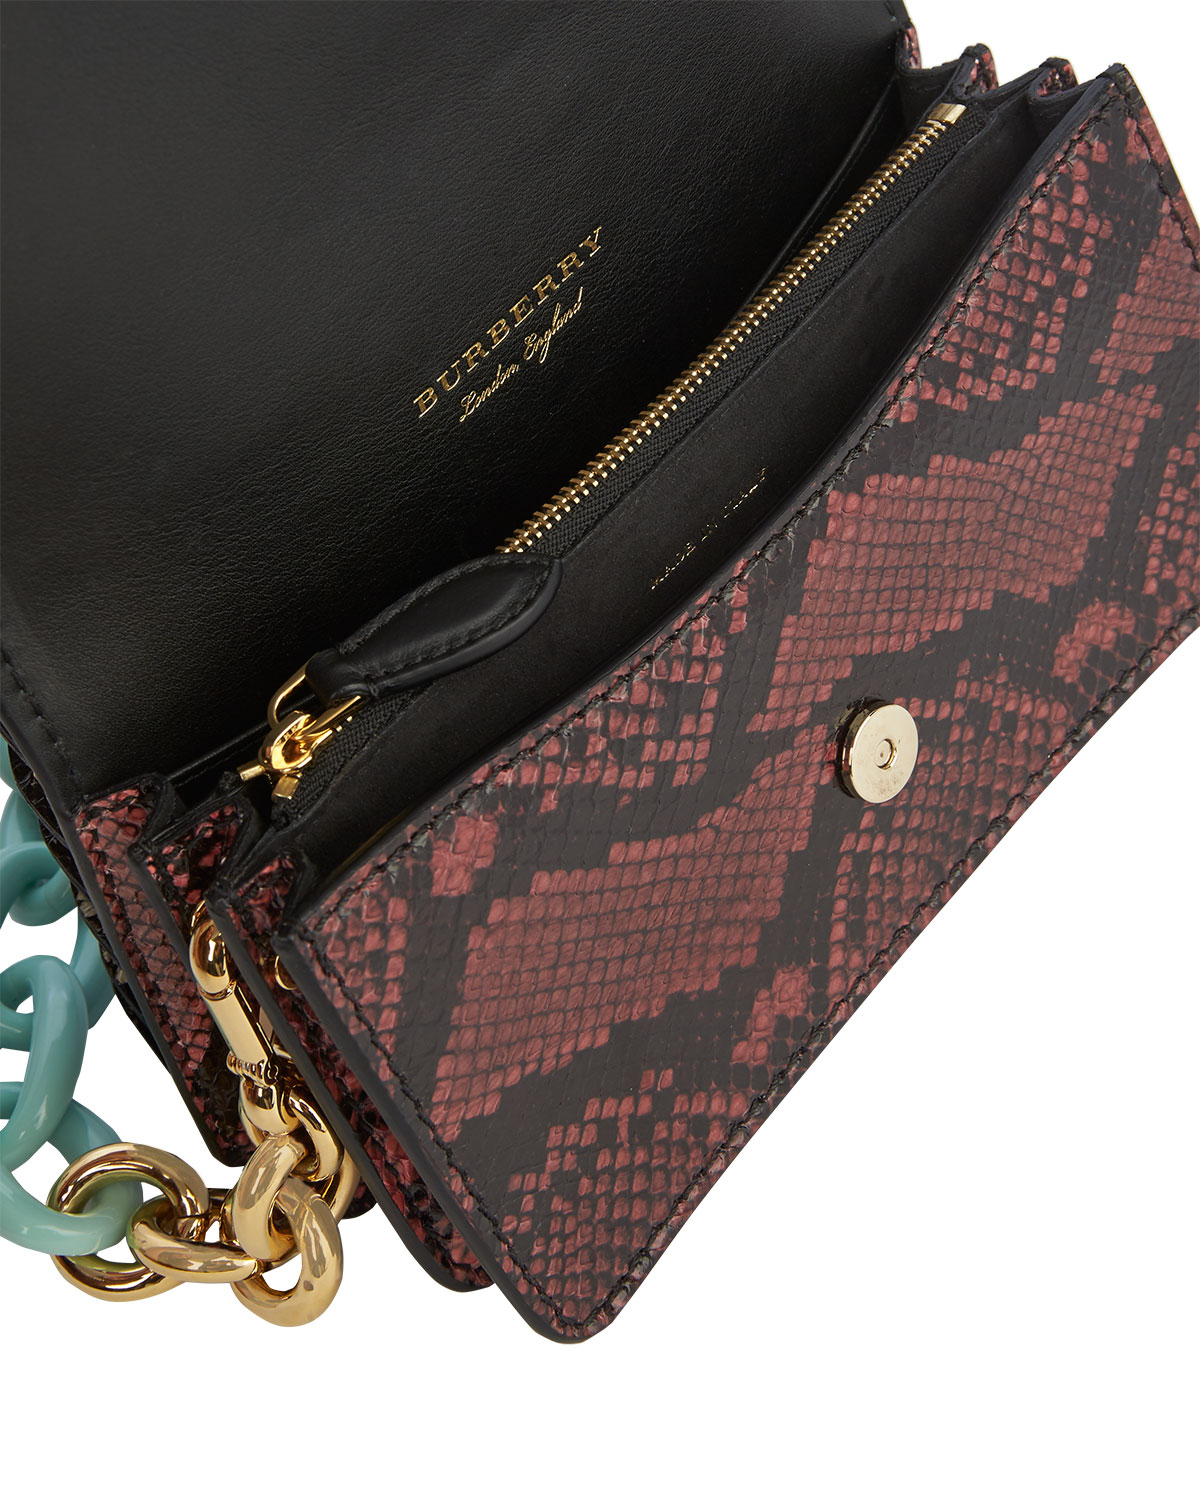 5c8df82c56c Burberry Bridle Baby Ruffled Snakeskin Shoulder Bag, Teal | Neiman Marcus